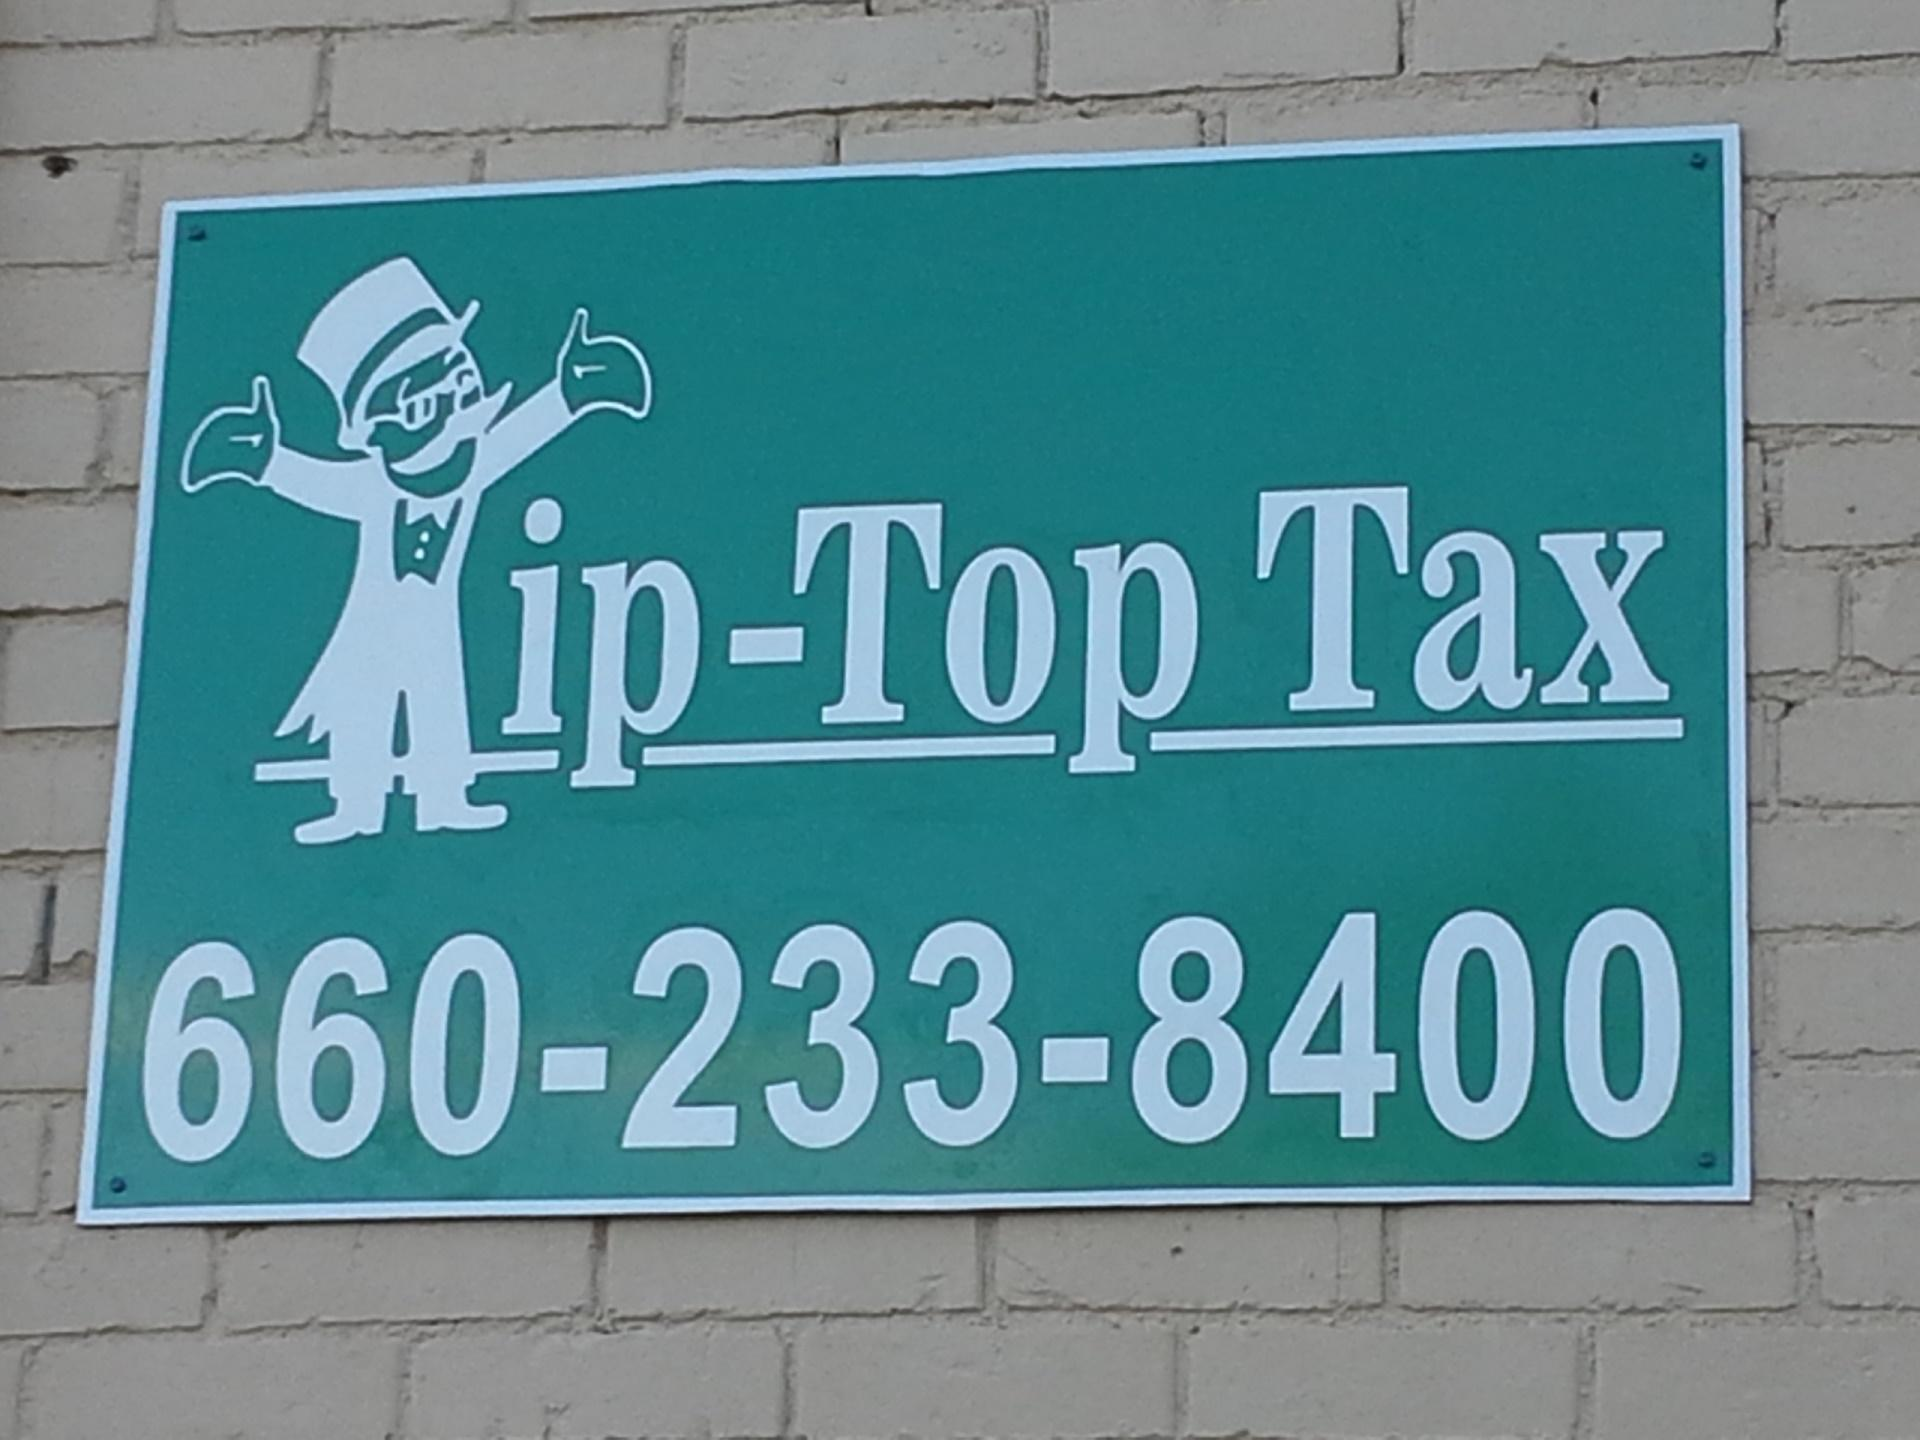 Tip Top Tax